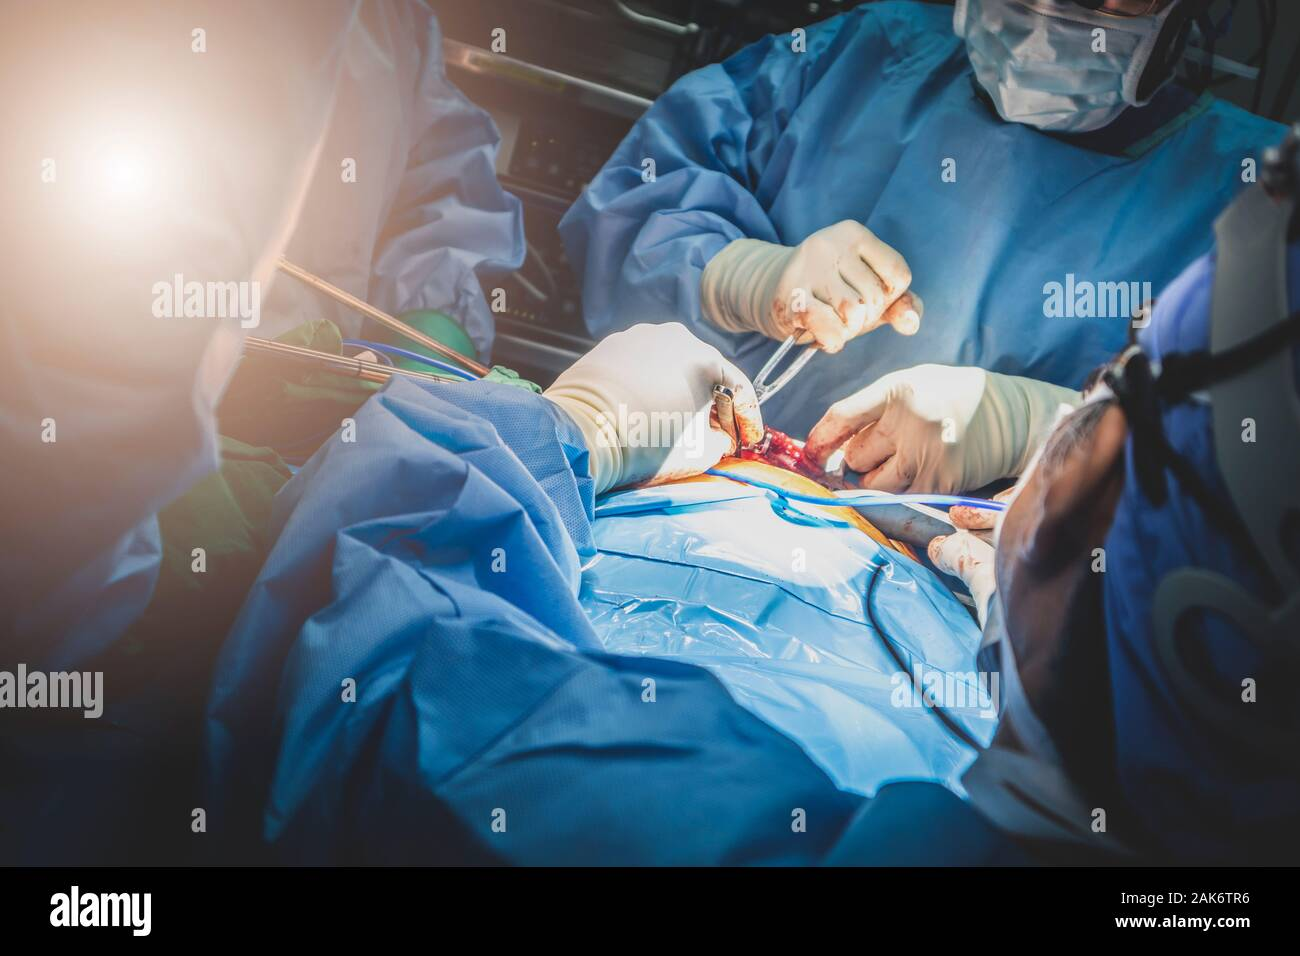 Close up group of surgeons in Surgery operating room. Medical team of surgeons doing surgery in hospital operating. Stock Photo